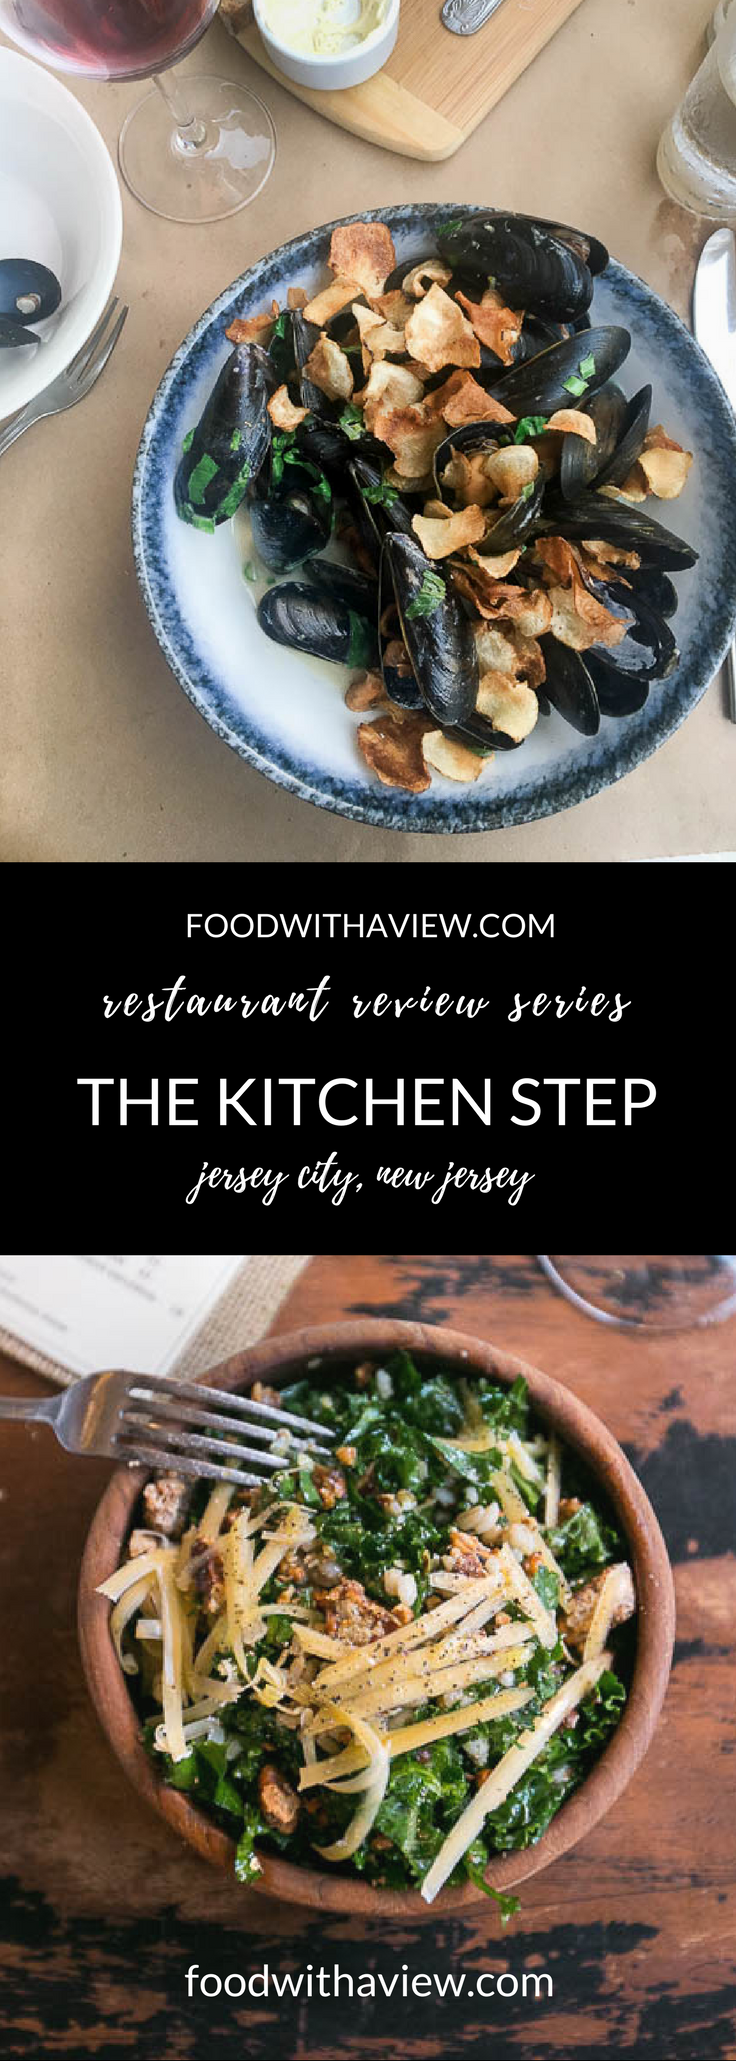 Foodwithaview.com NJ | NYC Restaurant Reviews | The Kitchen Step | Jersey City, New Jersey